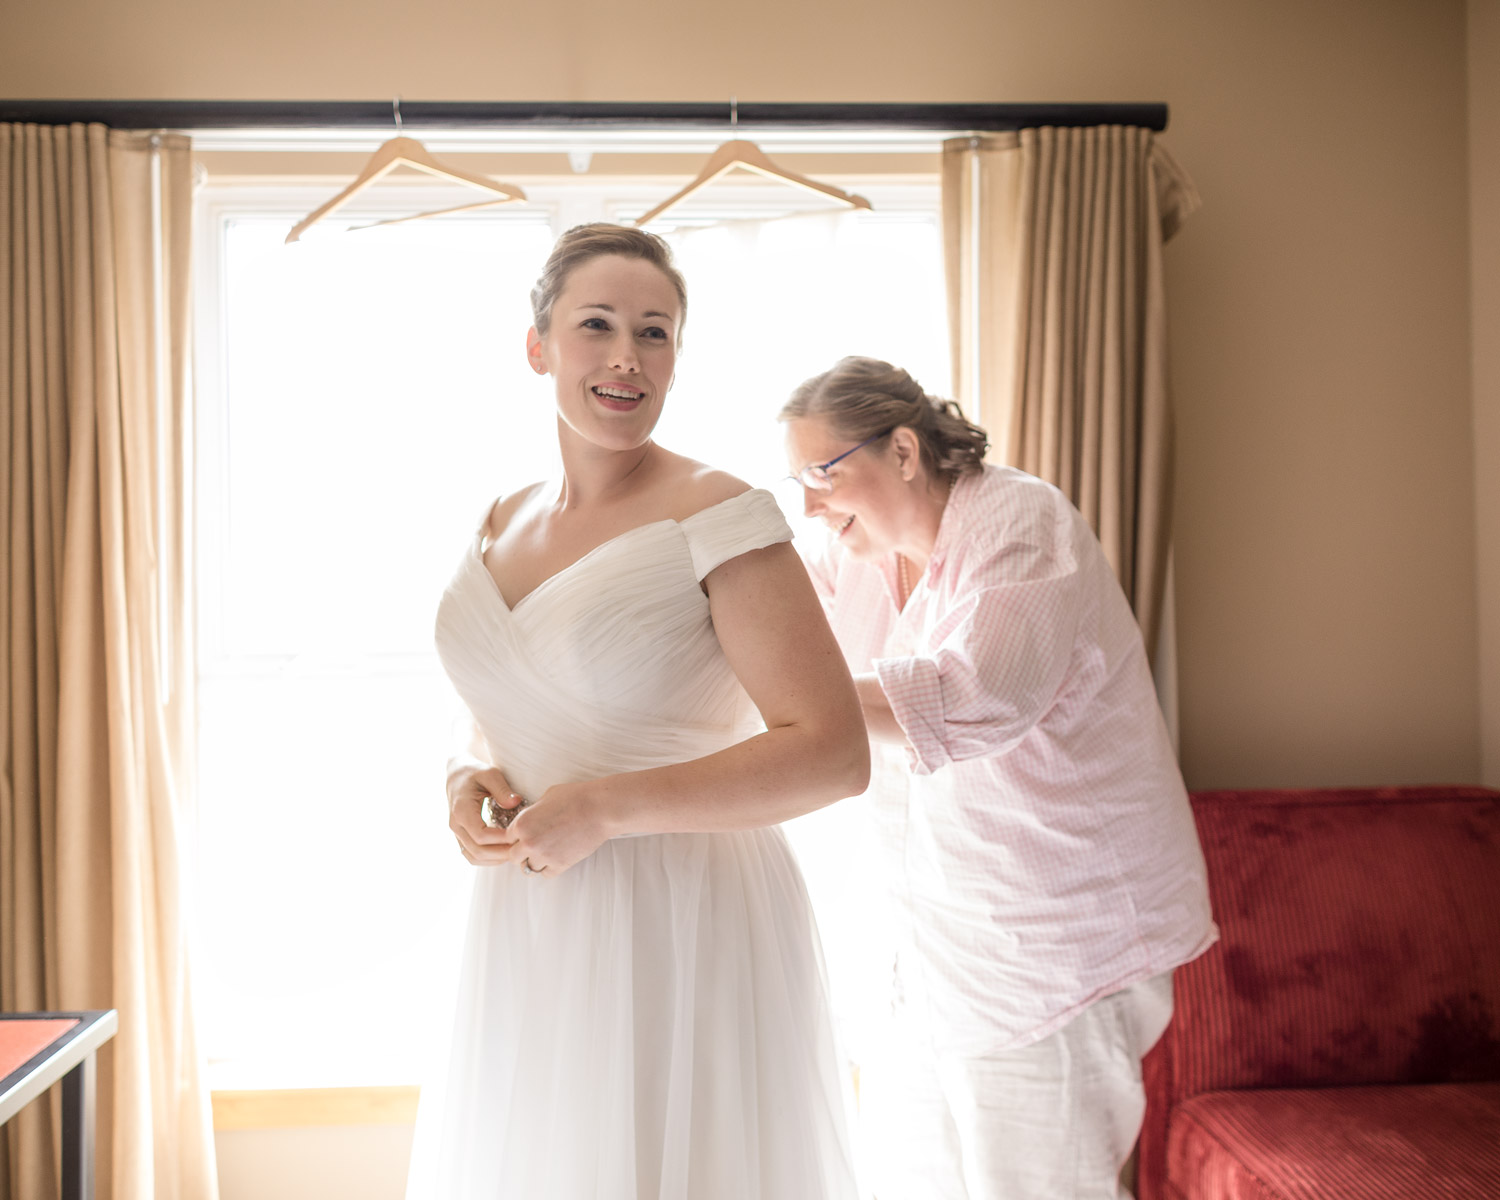 A bride's mother helps her get her wedding gown on before her Jay Peak wedding by Vermont photographer Stina Booth